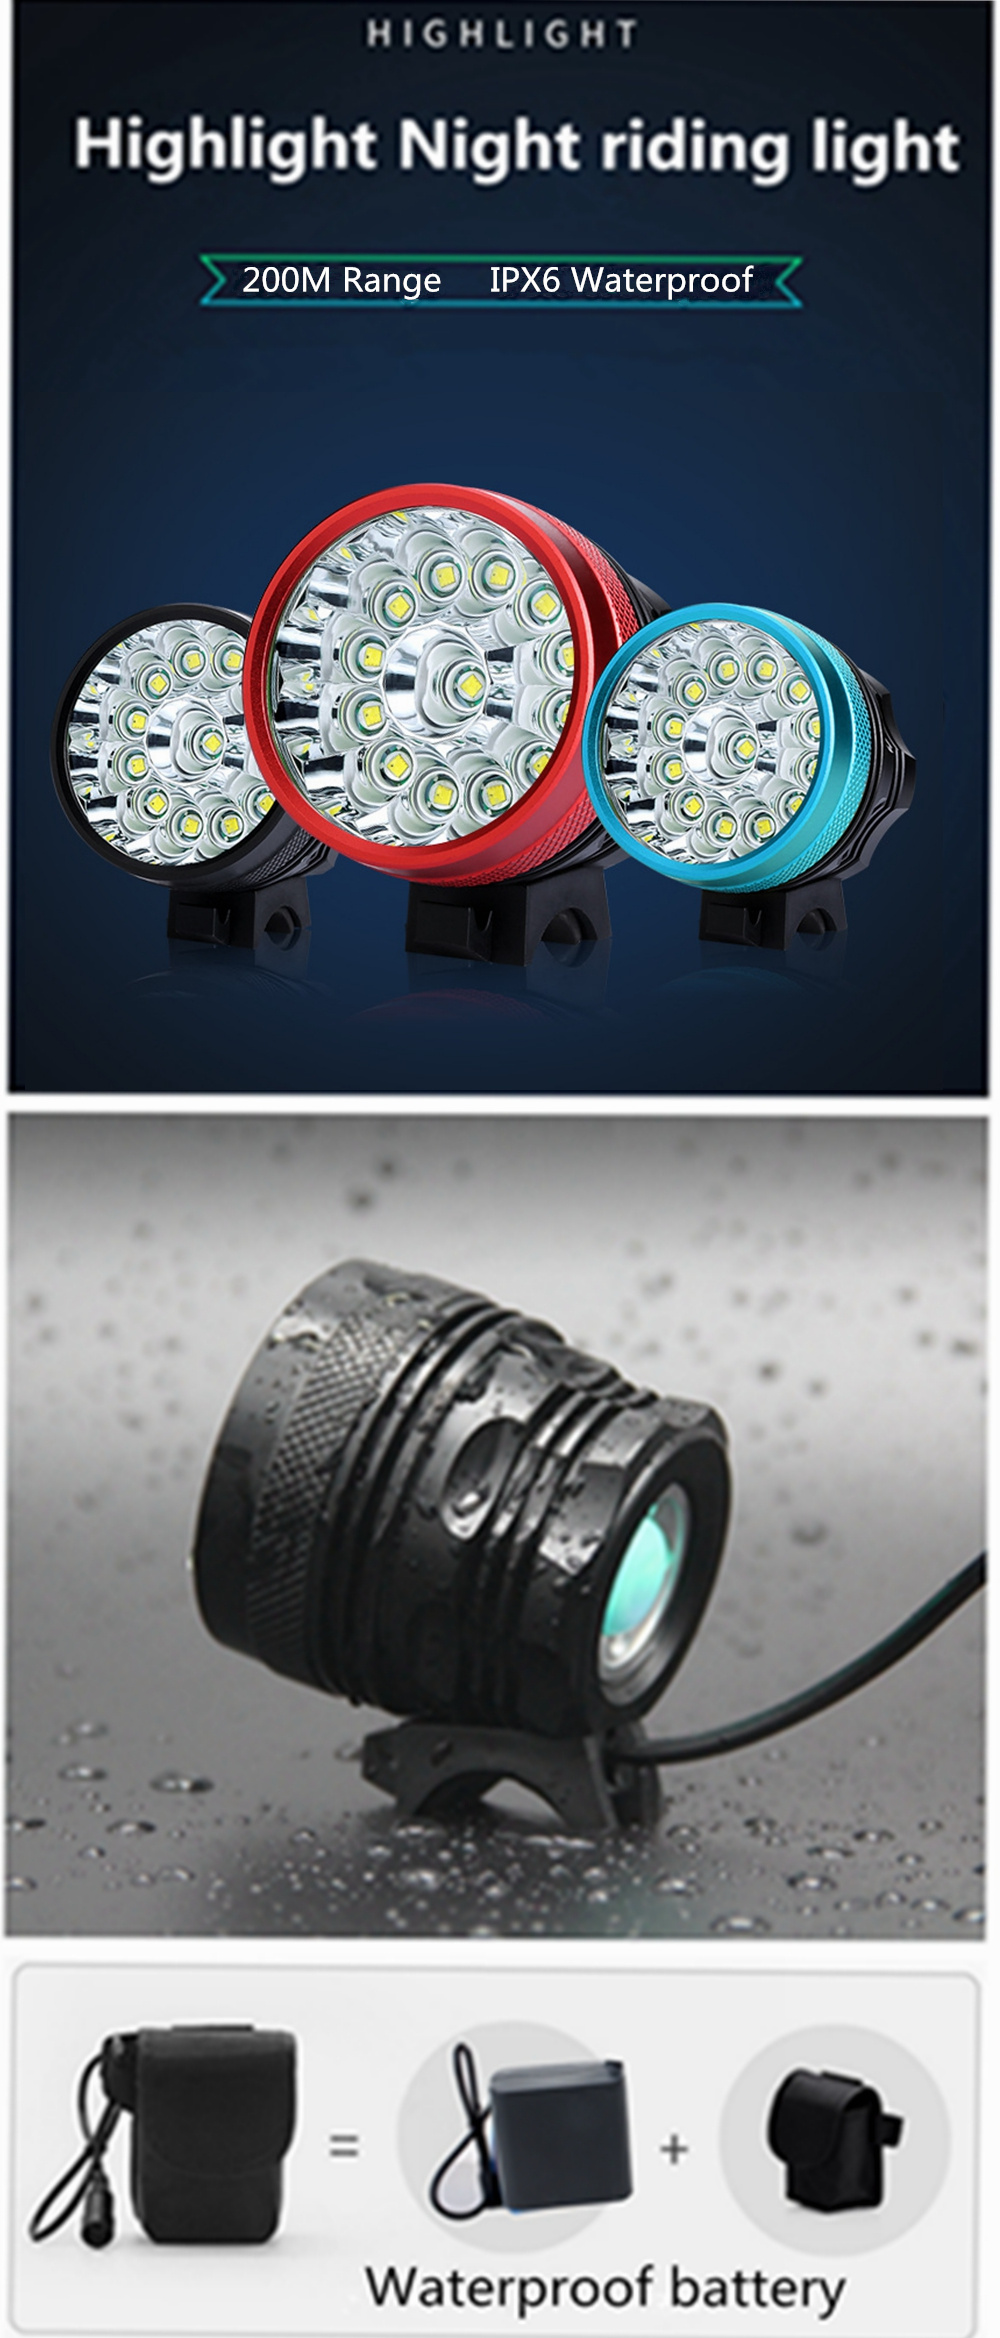 ZHISHUNJIA B13 13X XM-L T6 LED Bicycle Light with Waterproof Battery Pack- Celeste